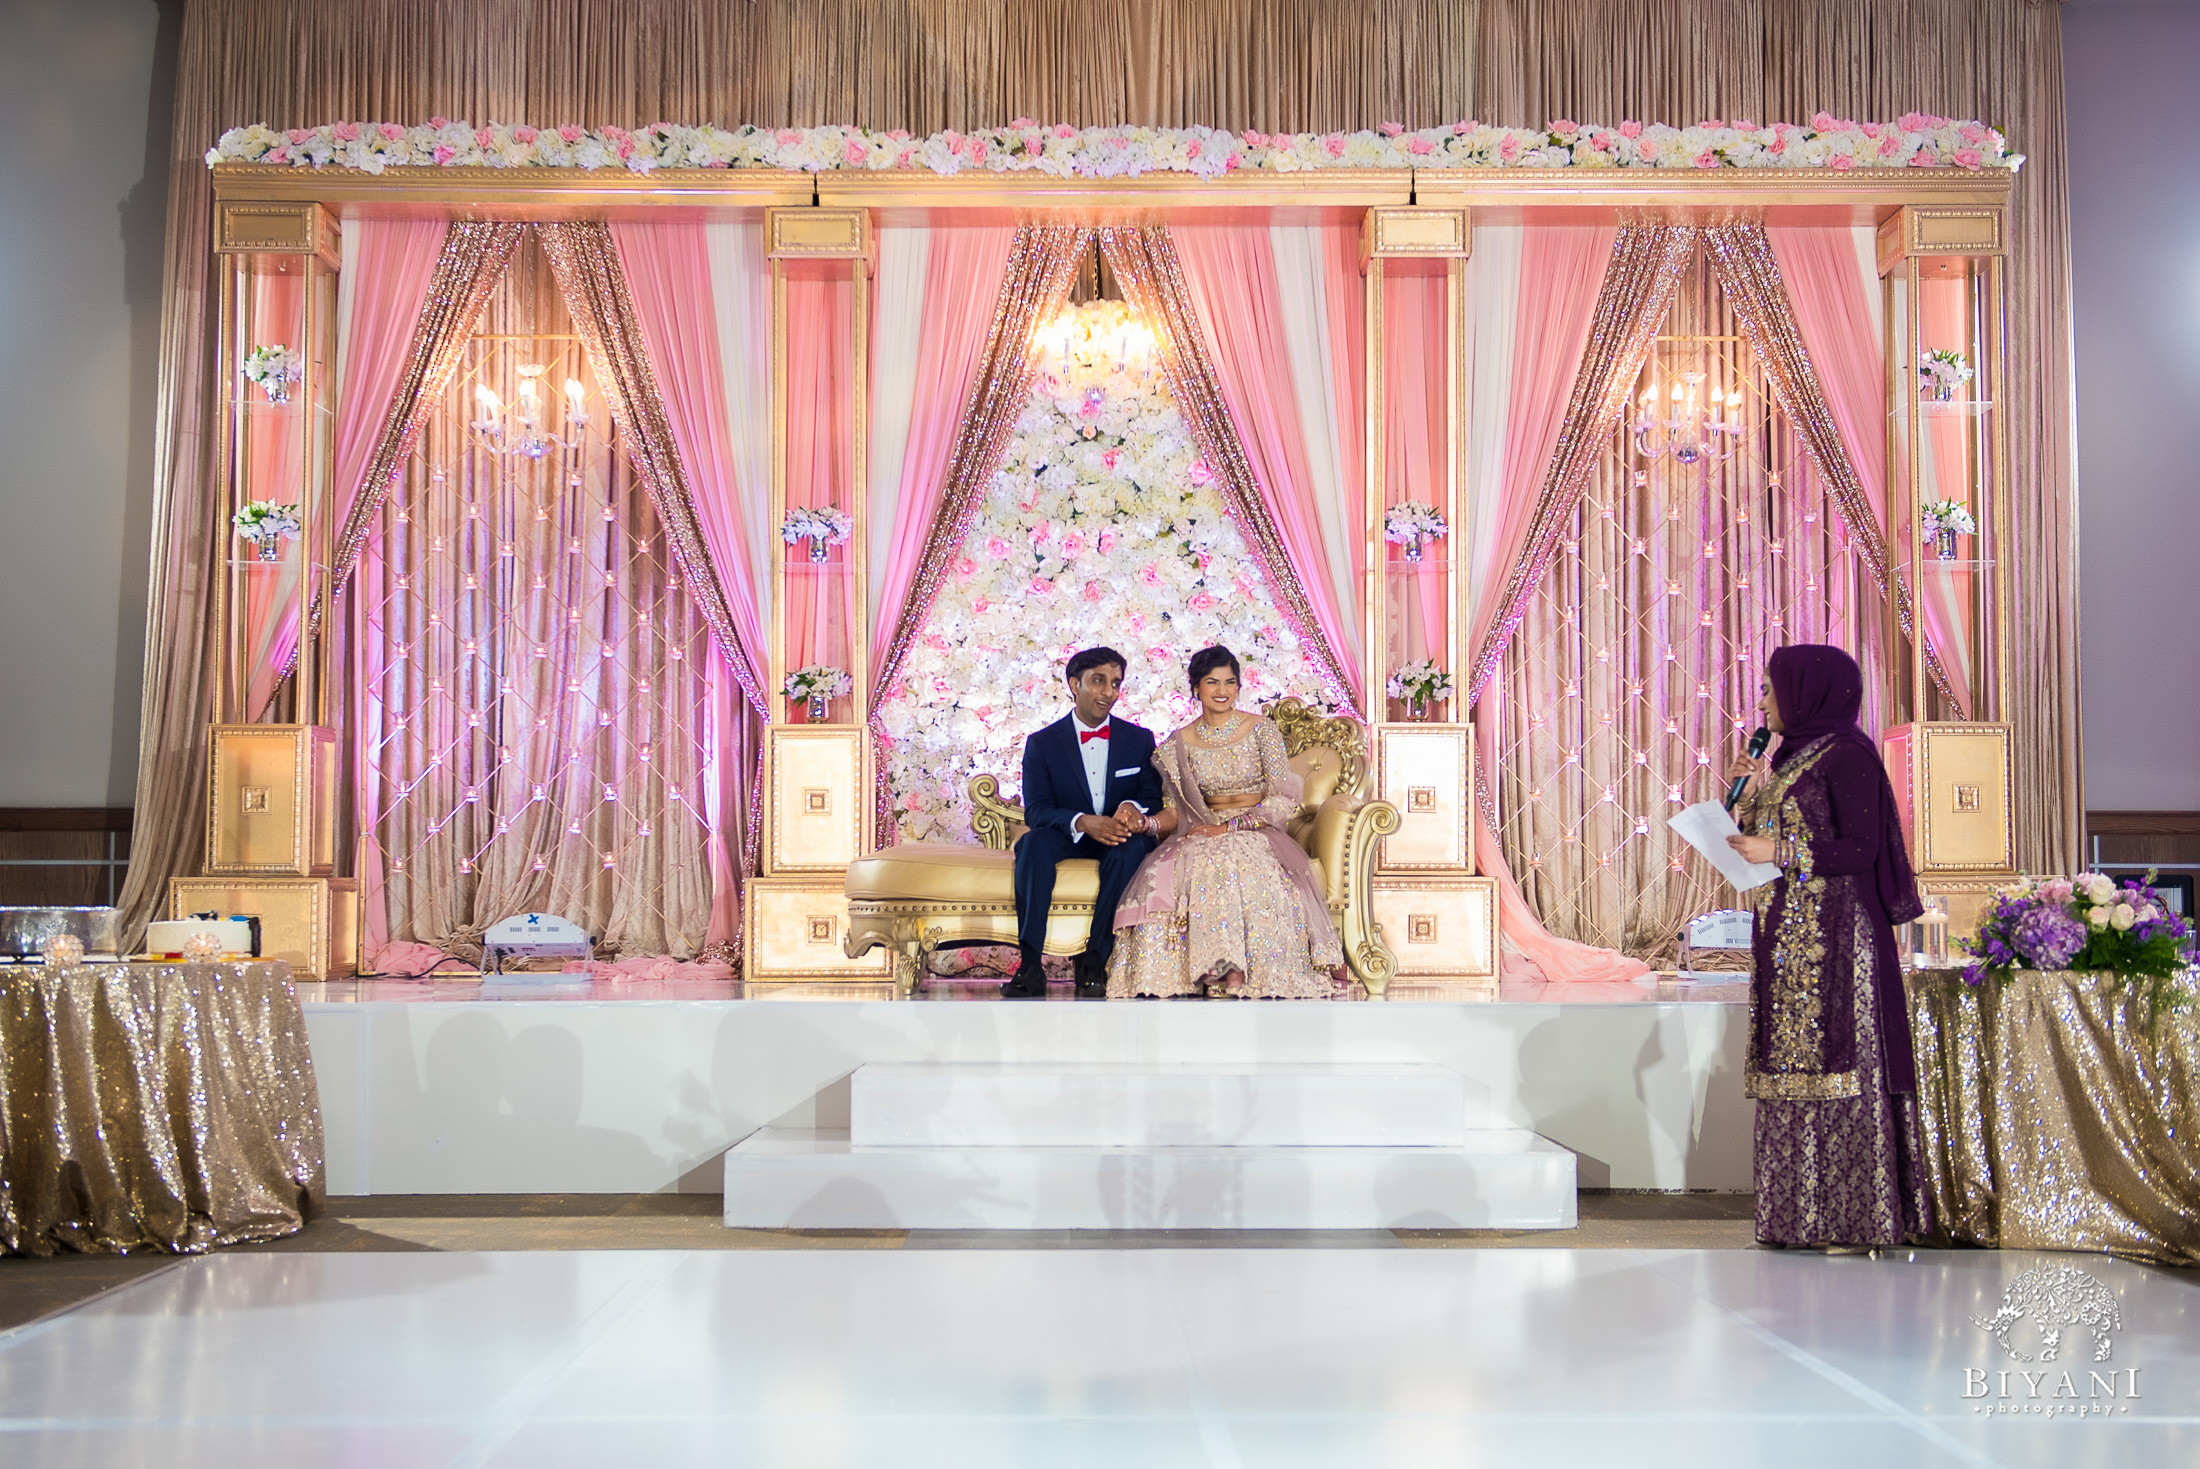 Bride and groom on reception stage